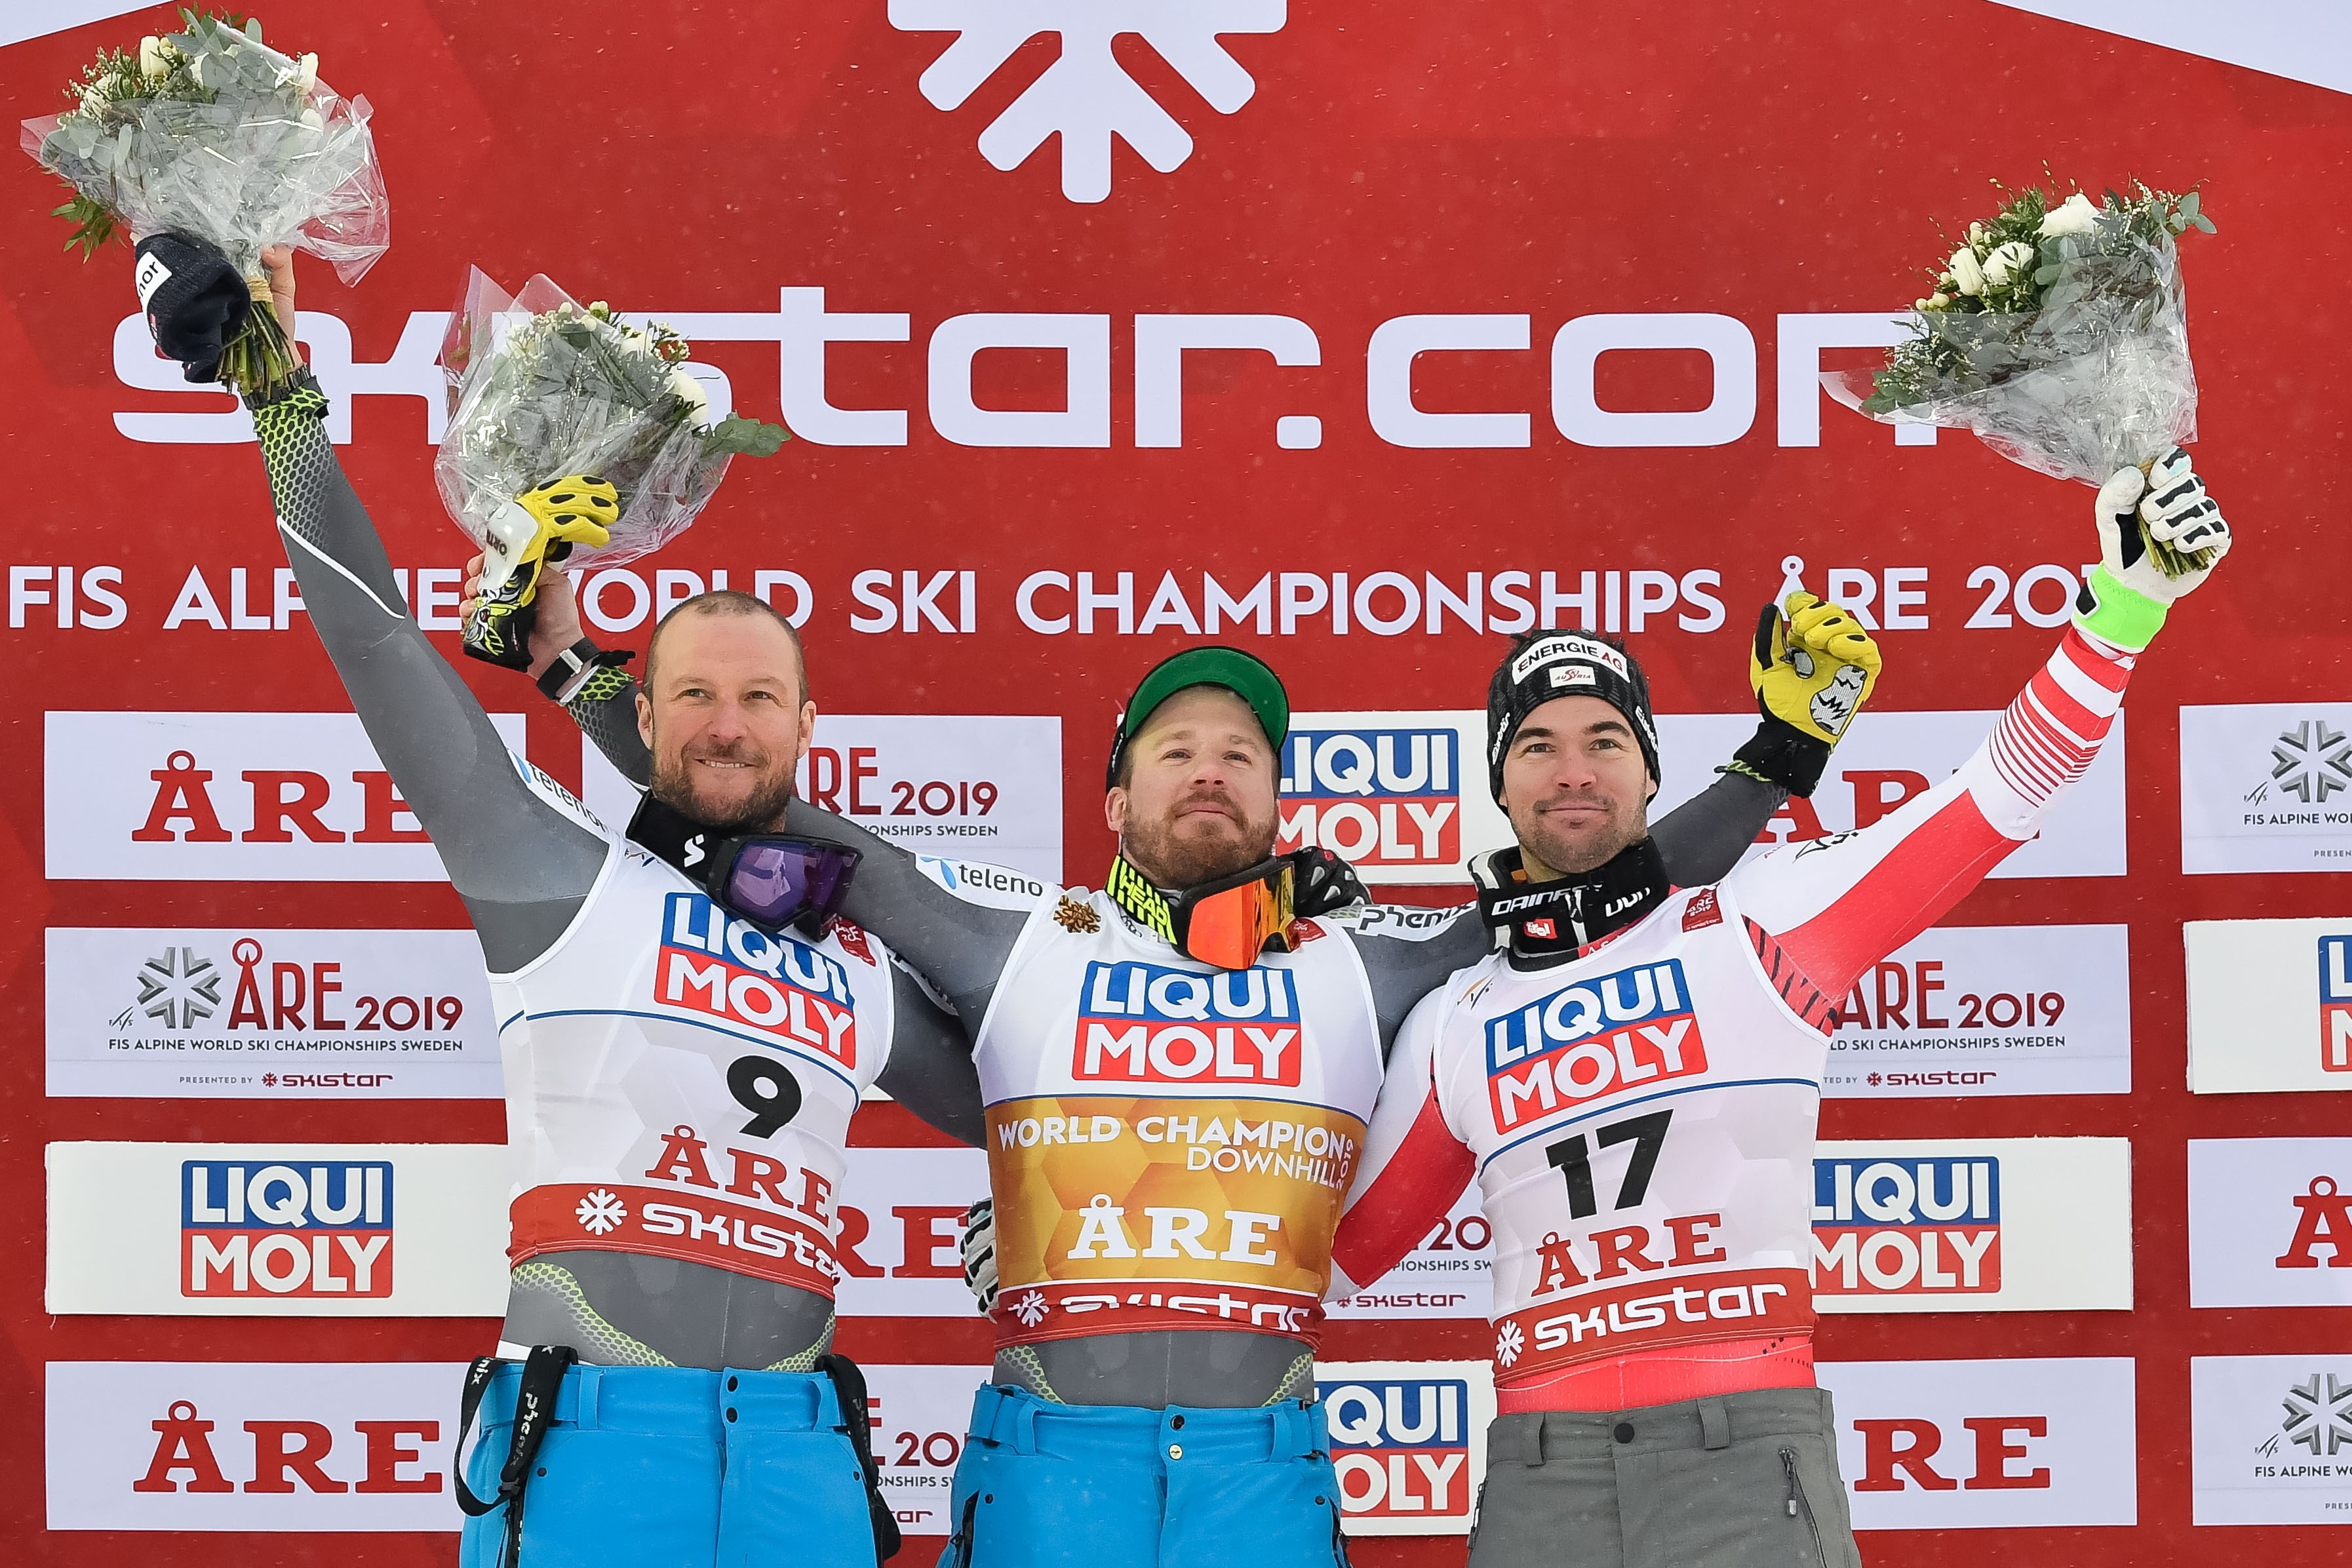 Aksel Lund Svindal of Norway wins the silver medal, Kjetil Jansrud of Norway wins the gold medal, Vincent Kriechmayr of Austria wins the bronze medal during the FIS World Ski Championships Men's Downhill on February 9, 2019 in Are Sweden.